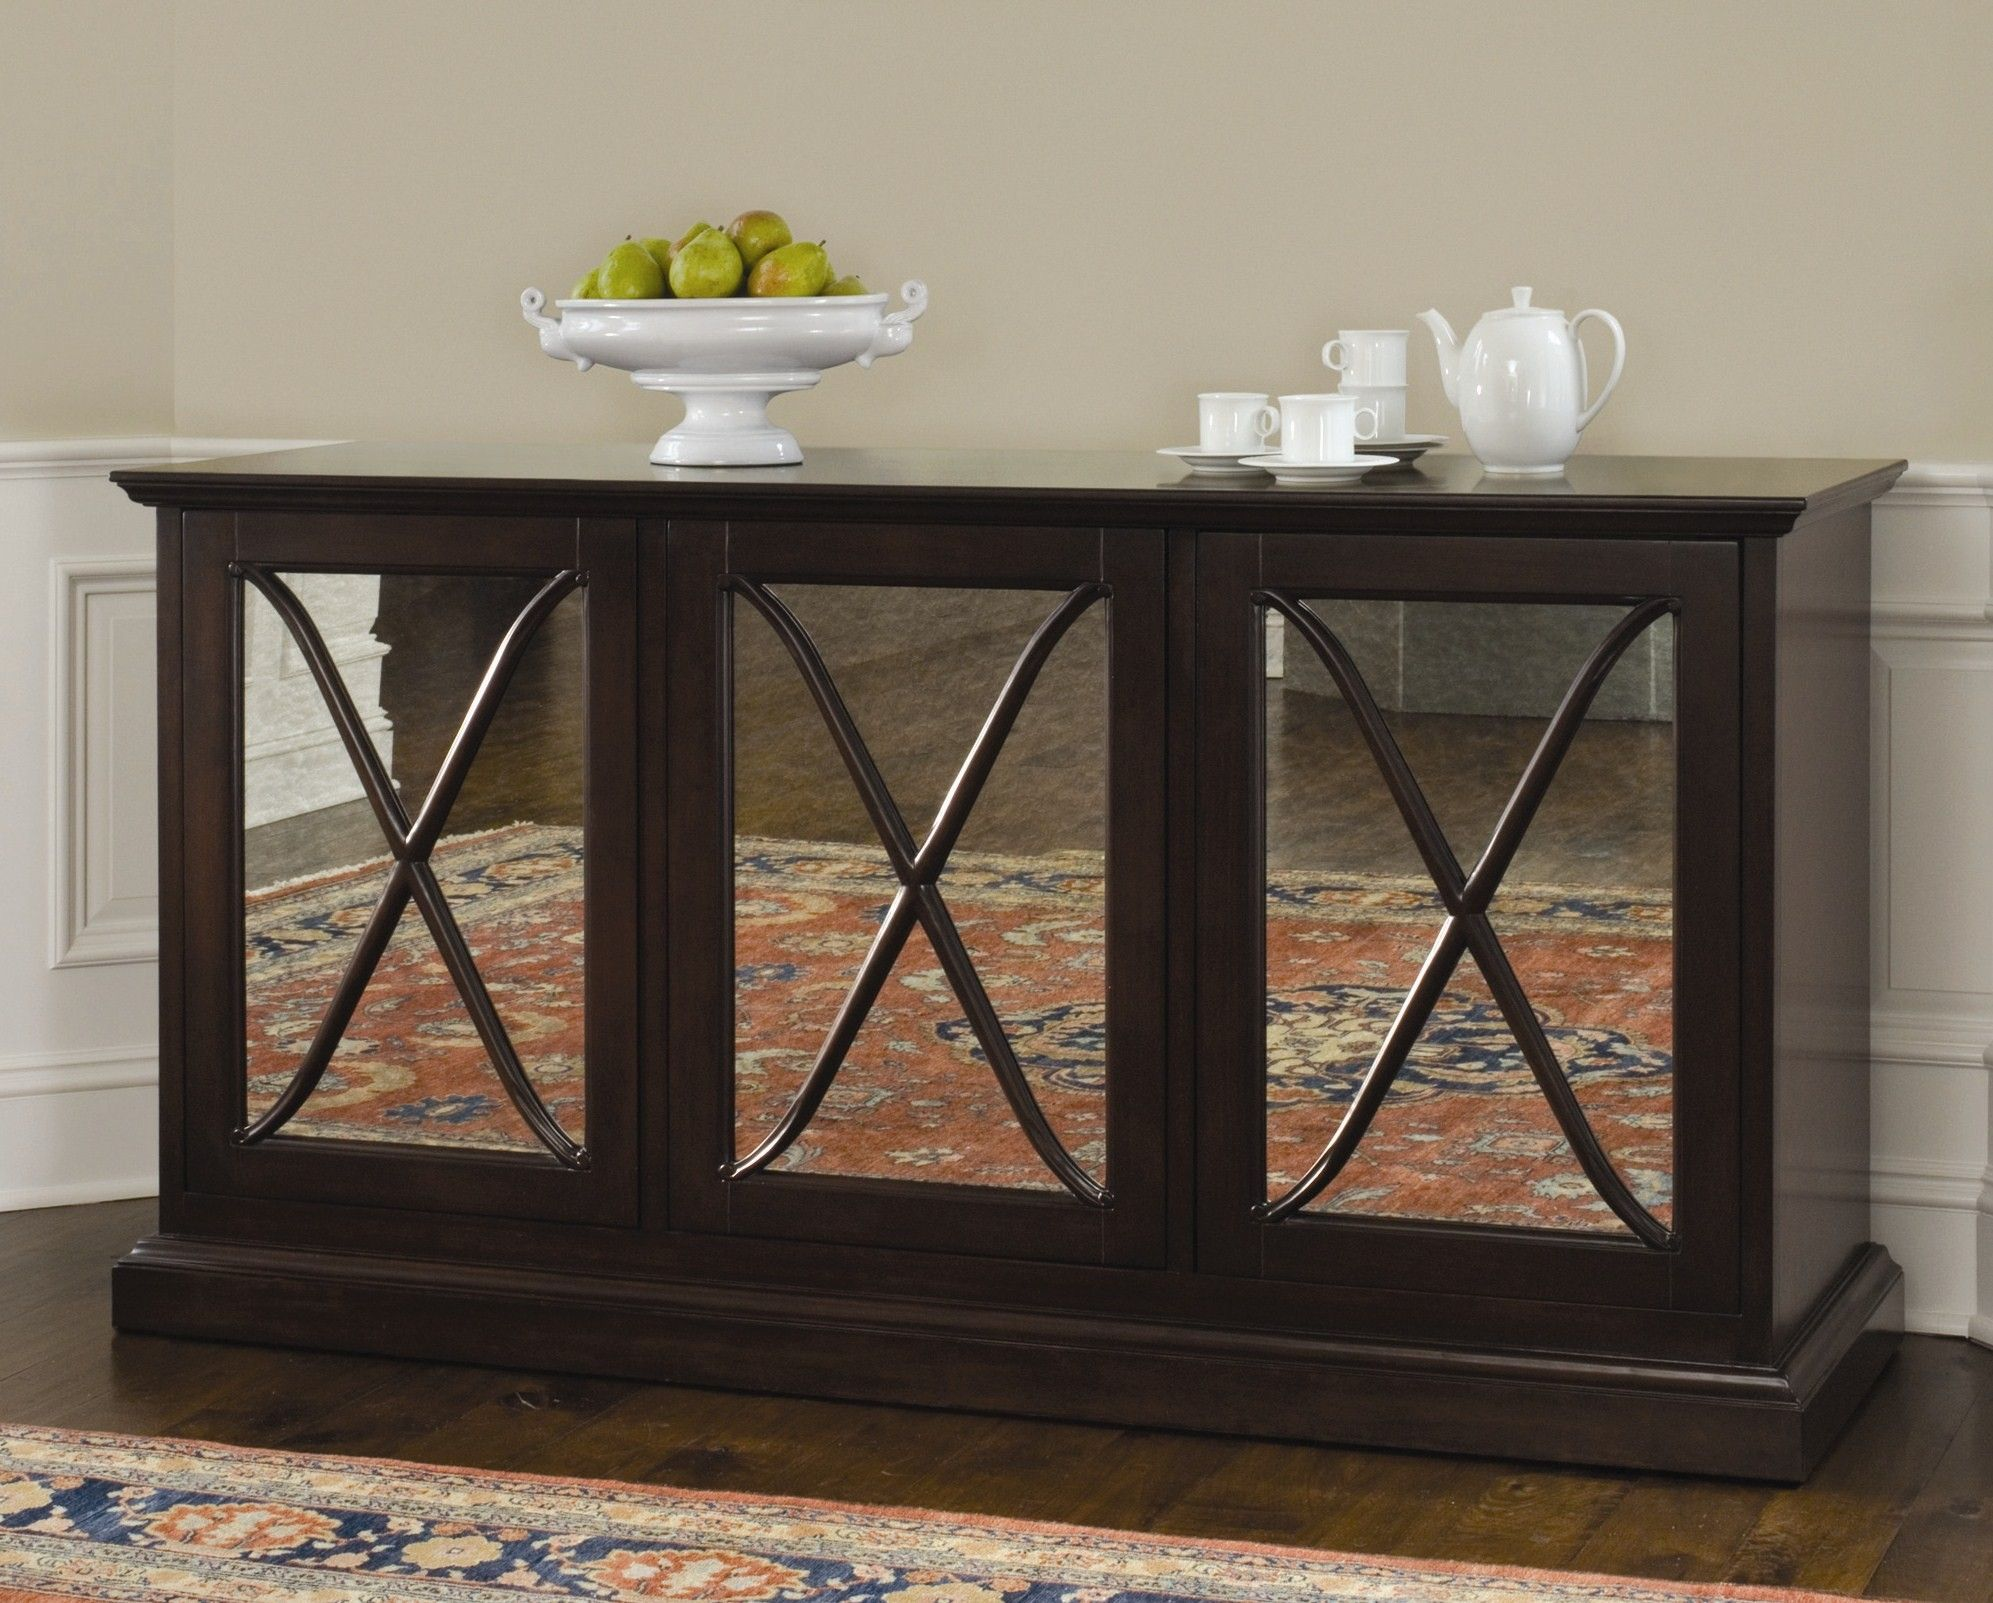 Contemporary buffet table furniture - Luxury Mirrored Modern Buffet Table With Triple Door Added Dark Brown Painted Also Modern Living Rugs